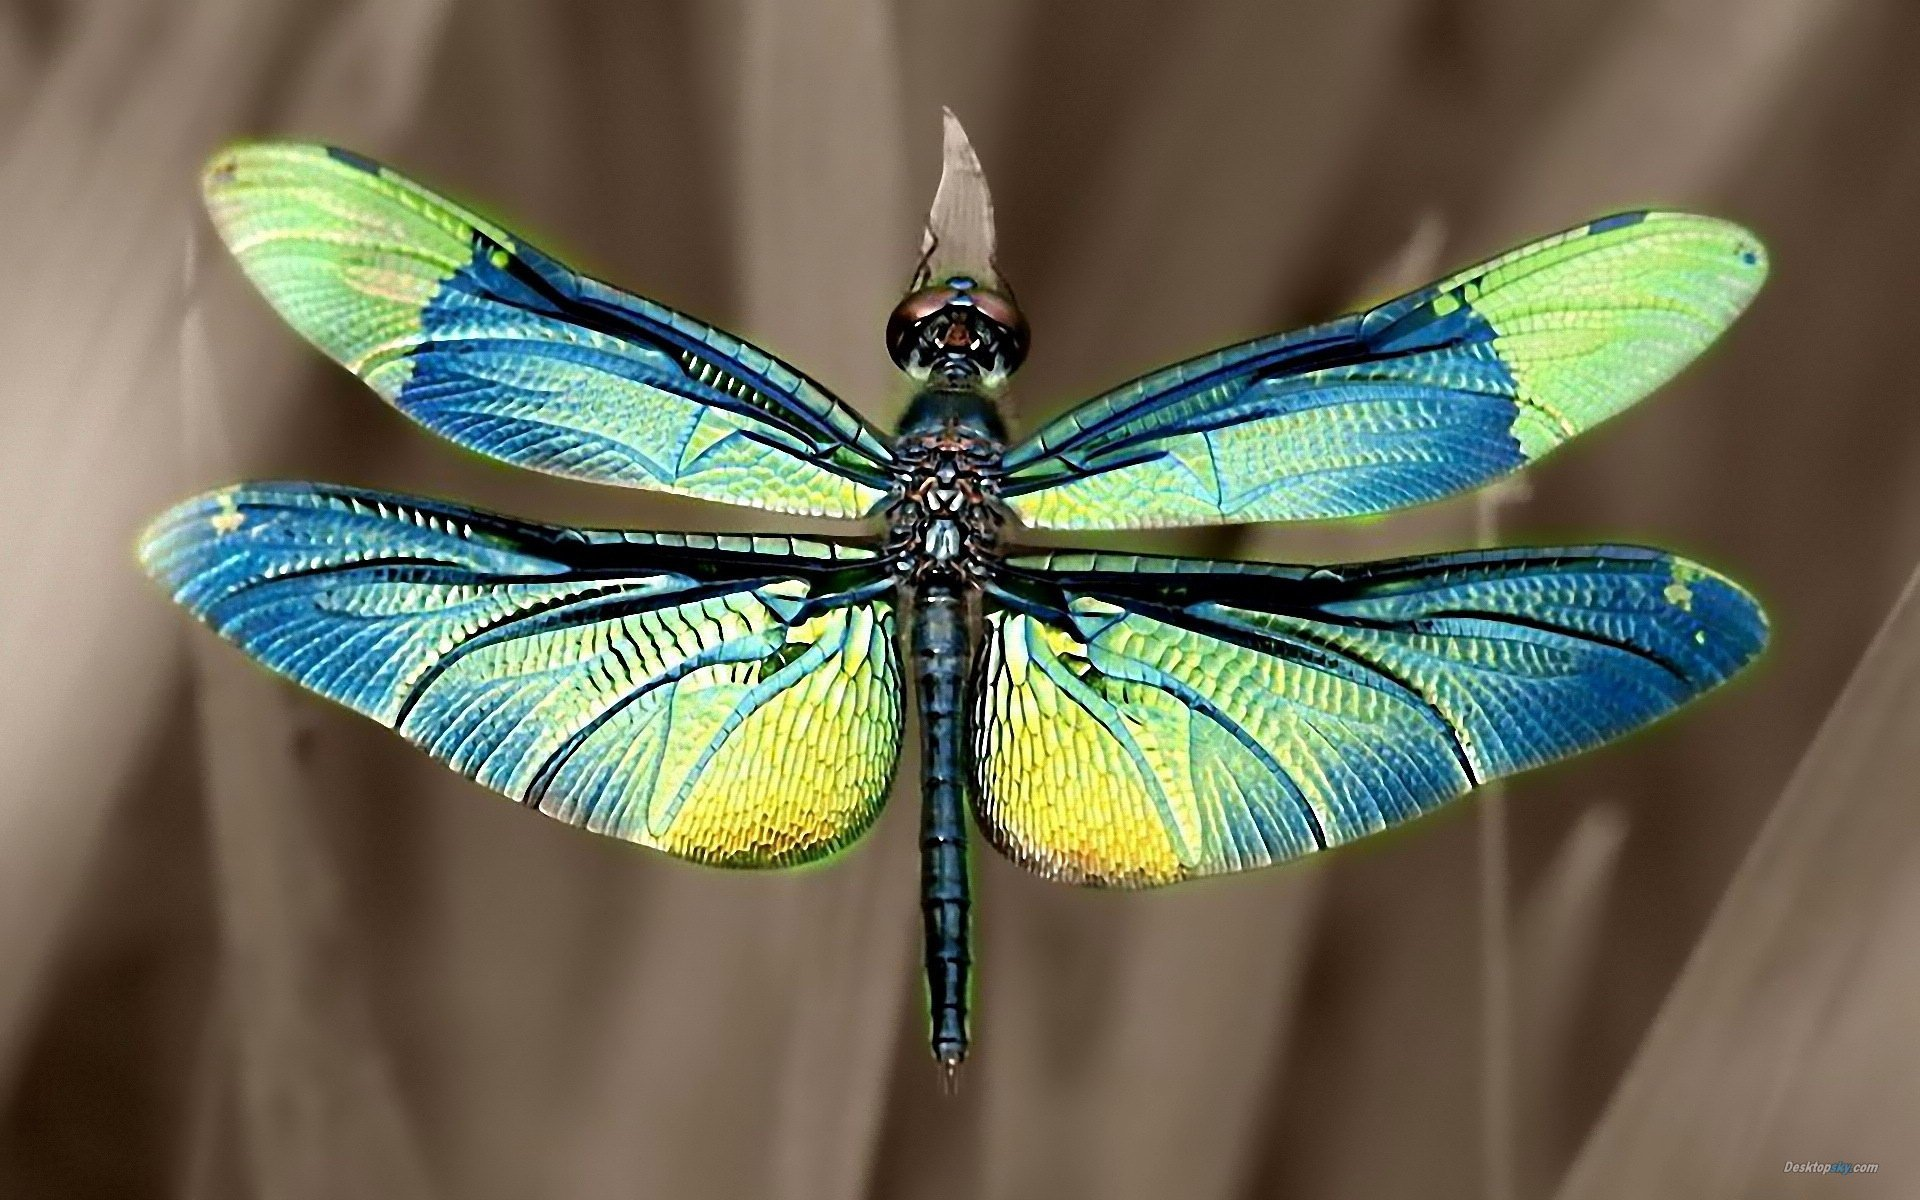 Summer beautiful dragonfly wallpapers 1920x1200 10 1920x1200